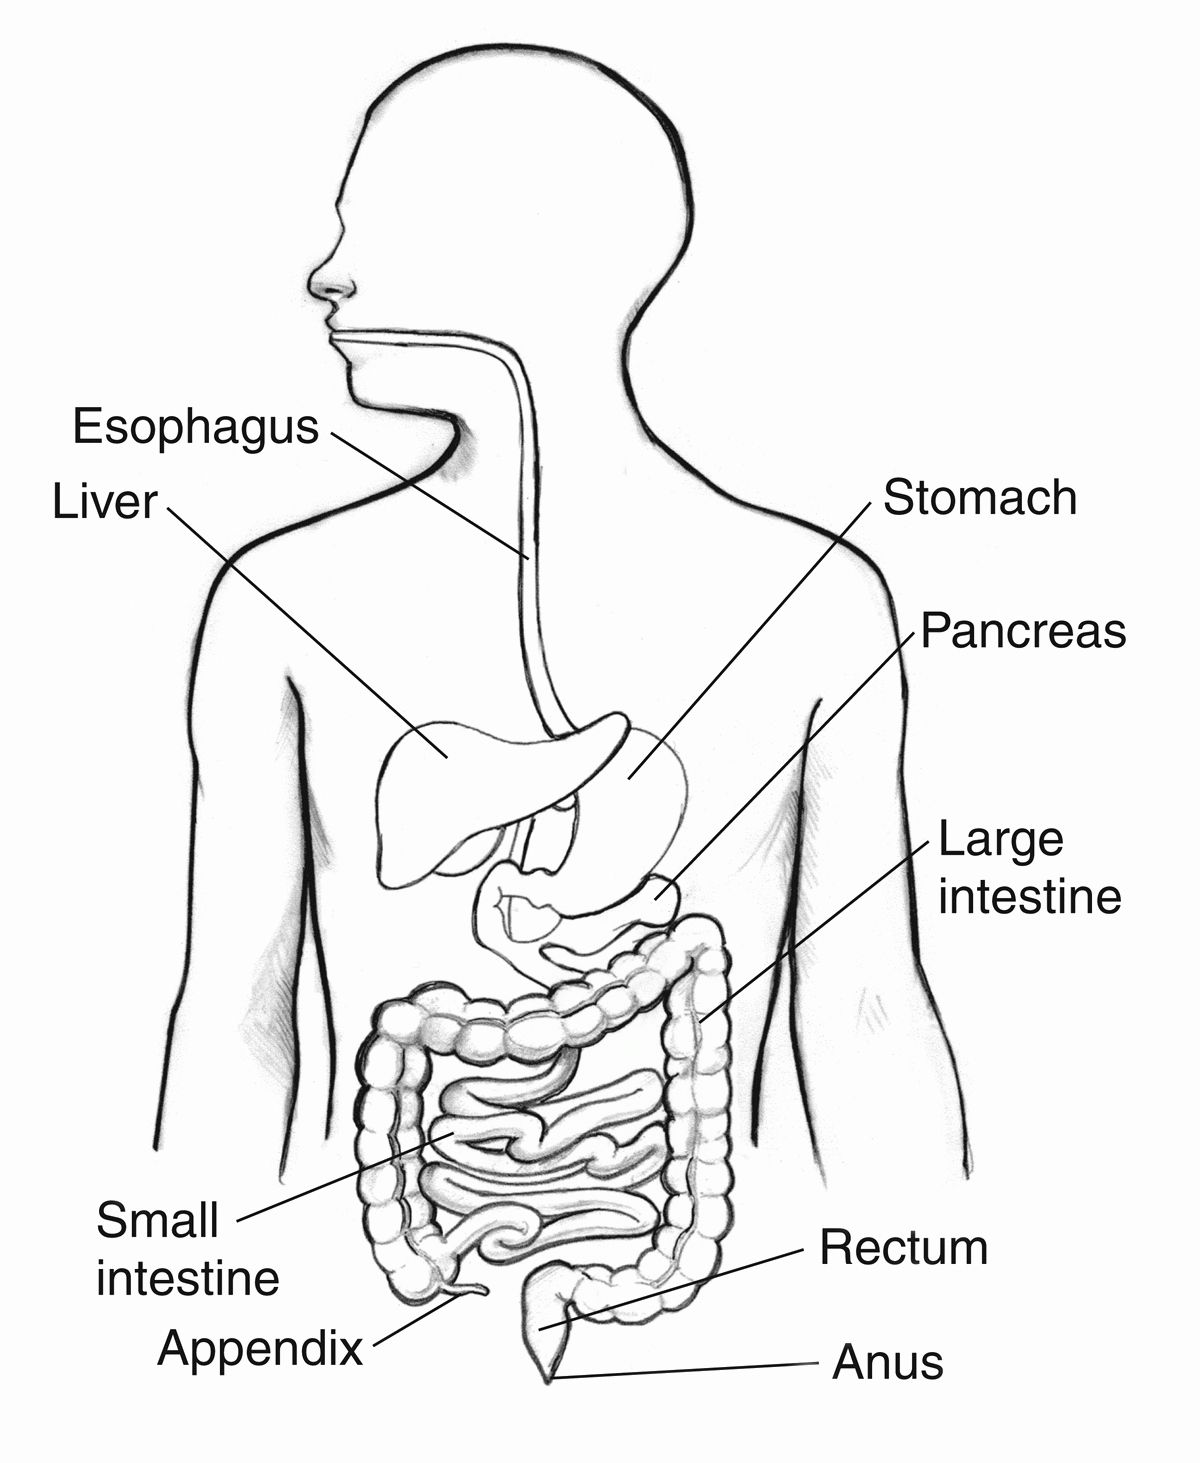 digestive system coloring pages digestive system coloring page coloring home system digestive pages coloring